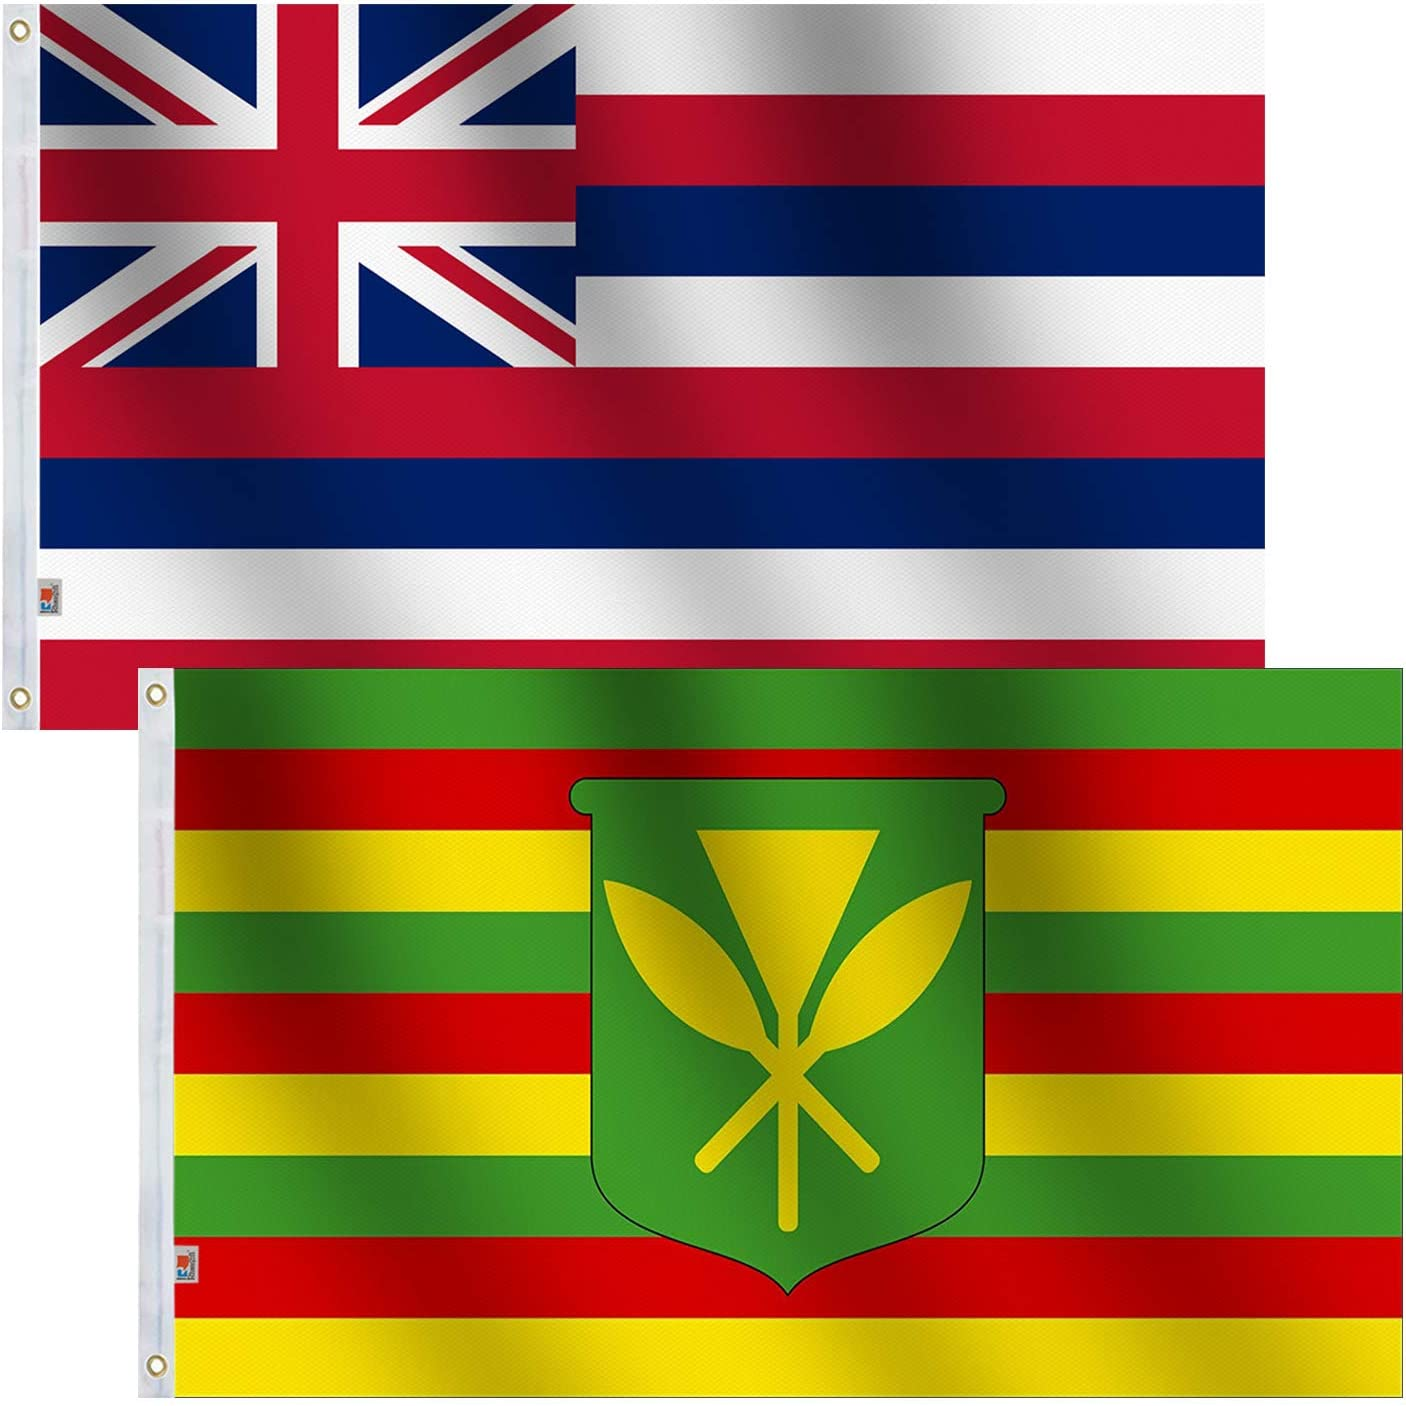 2Pack Set State Hawaii & Kanaka Maoli Flag 3x5 Ft Large , Both Sides 100D Polyester For moderate-outdoor&indoor,Canvas Header Brass Grommets for Easy Display, 3' x 5' Kamehameha Hawaiian Flags